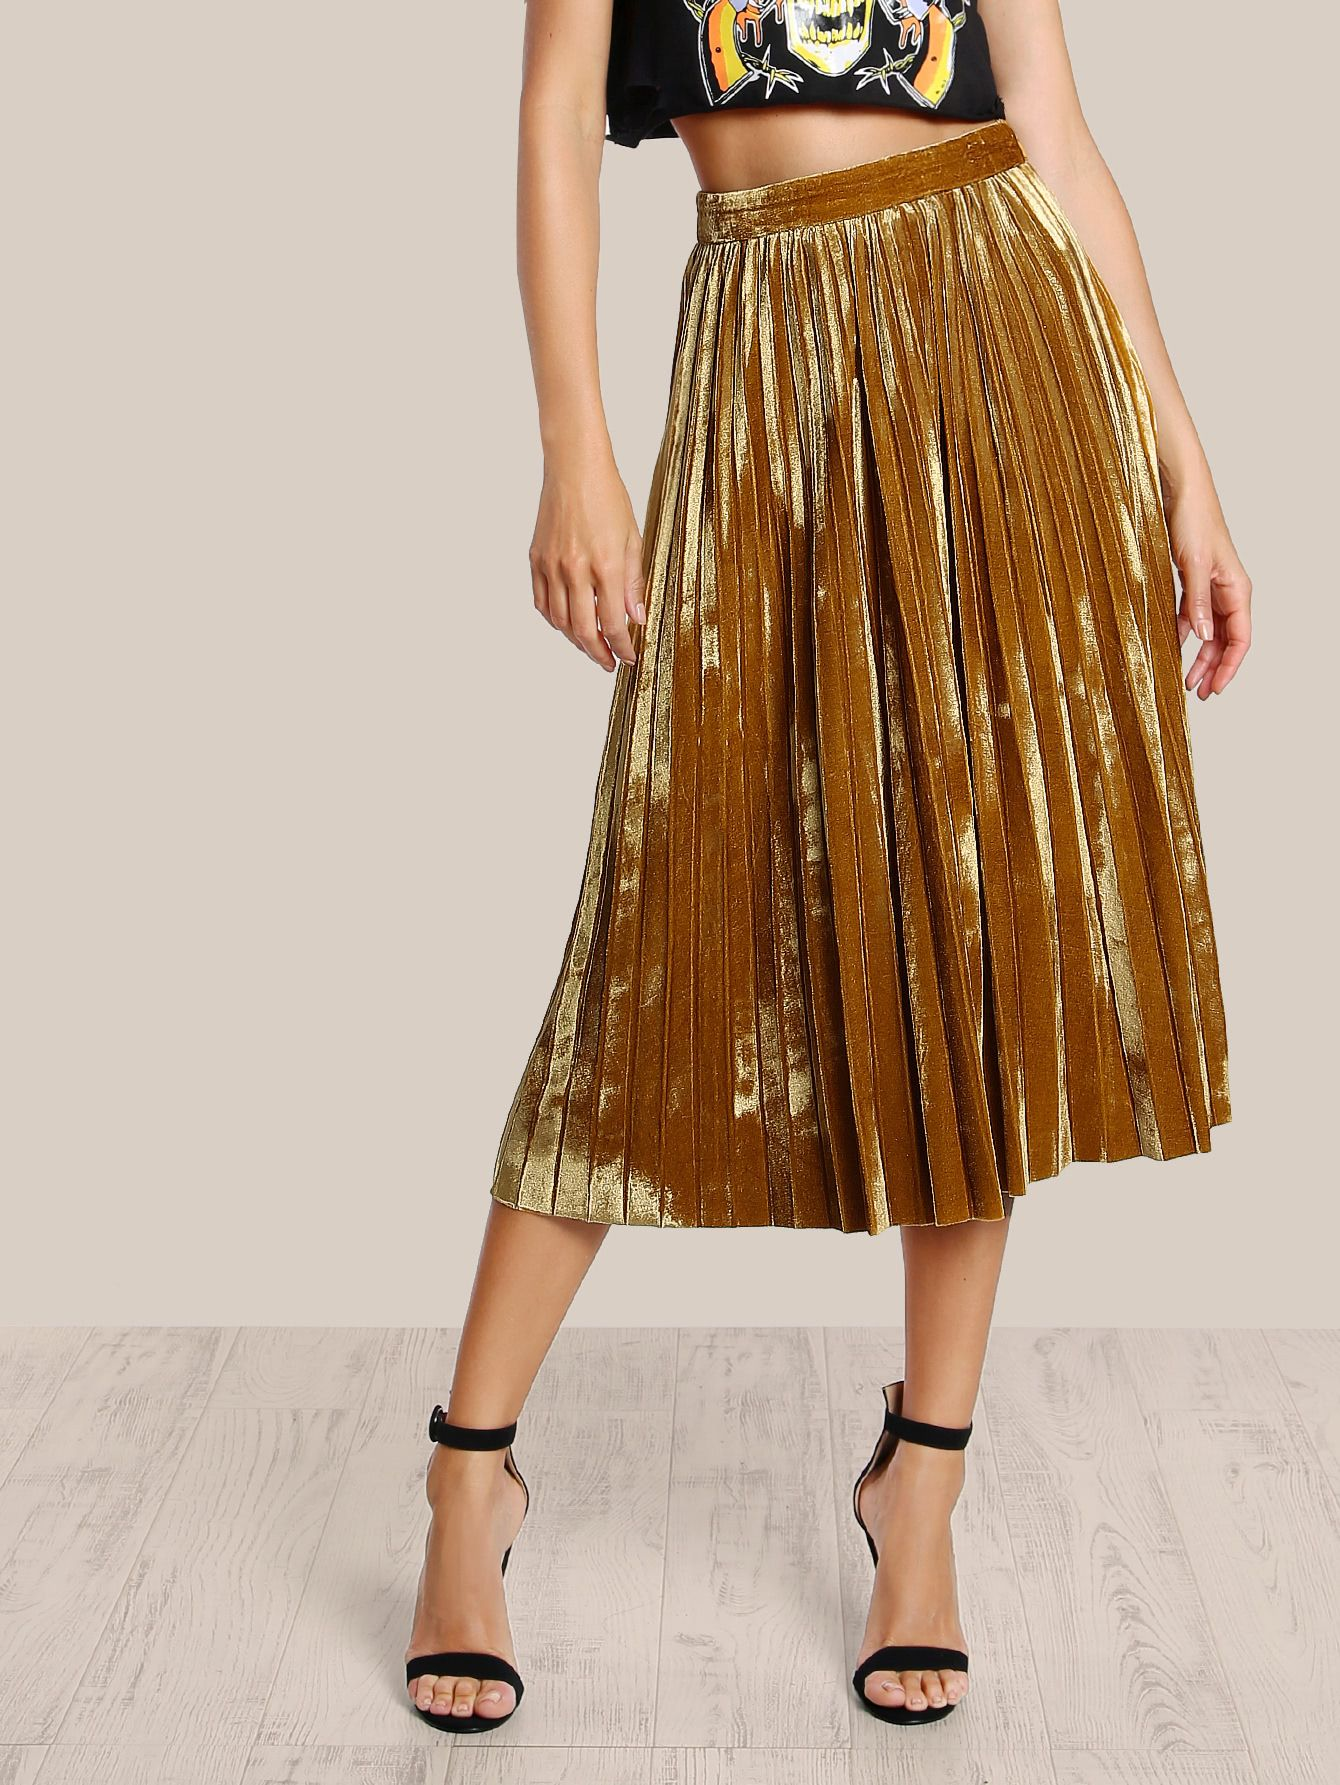 d0299de89 Shop Velvet High Rise Pleated Skirt MUSTARD online. SheIn offers Velvet  High Rise Pleated Skirt MUSTARD & more to fit your fashionable needs.